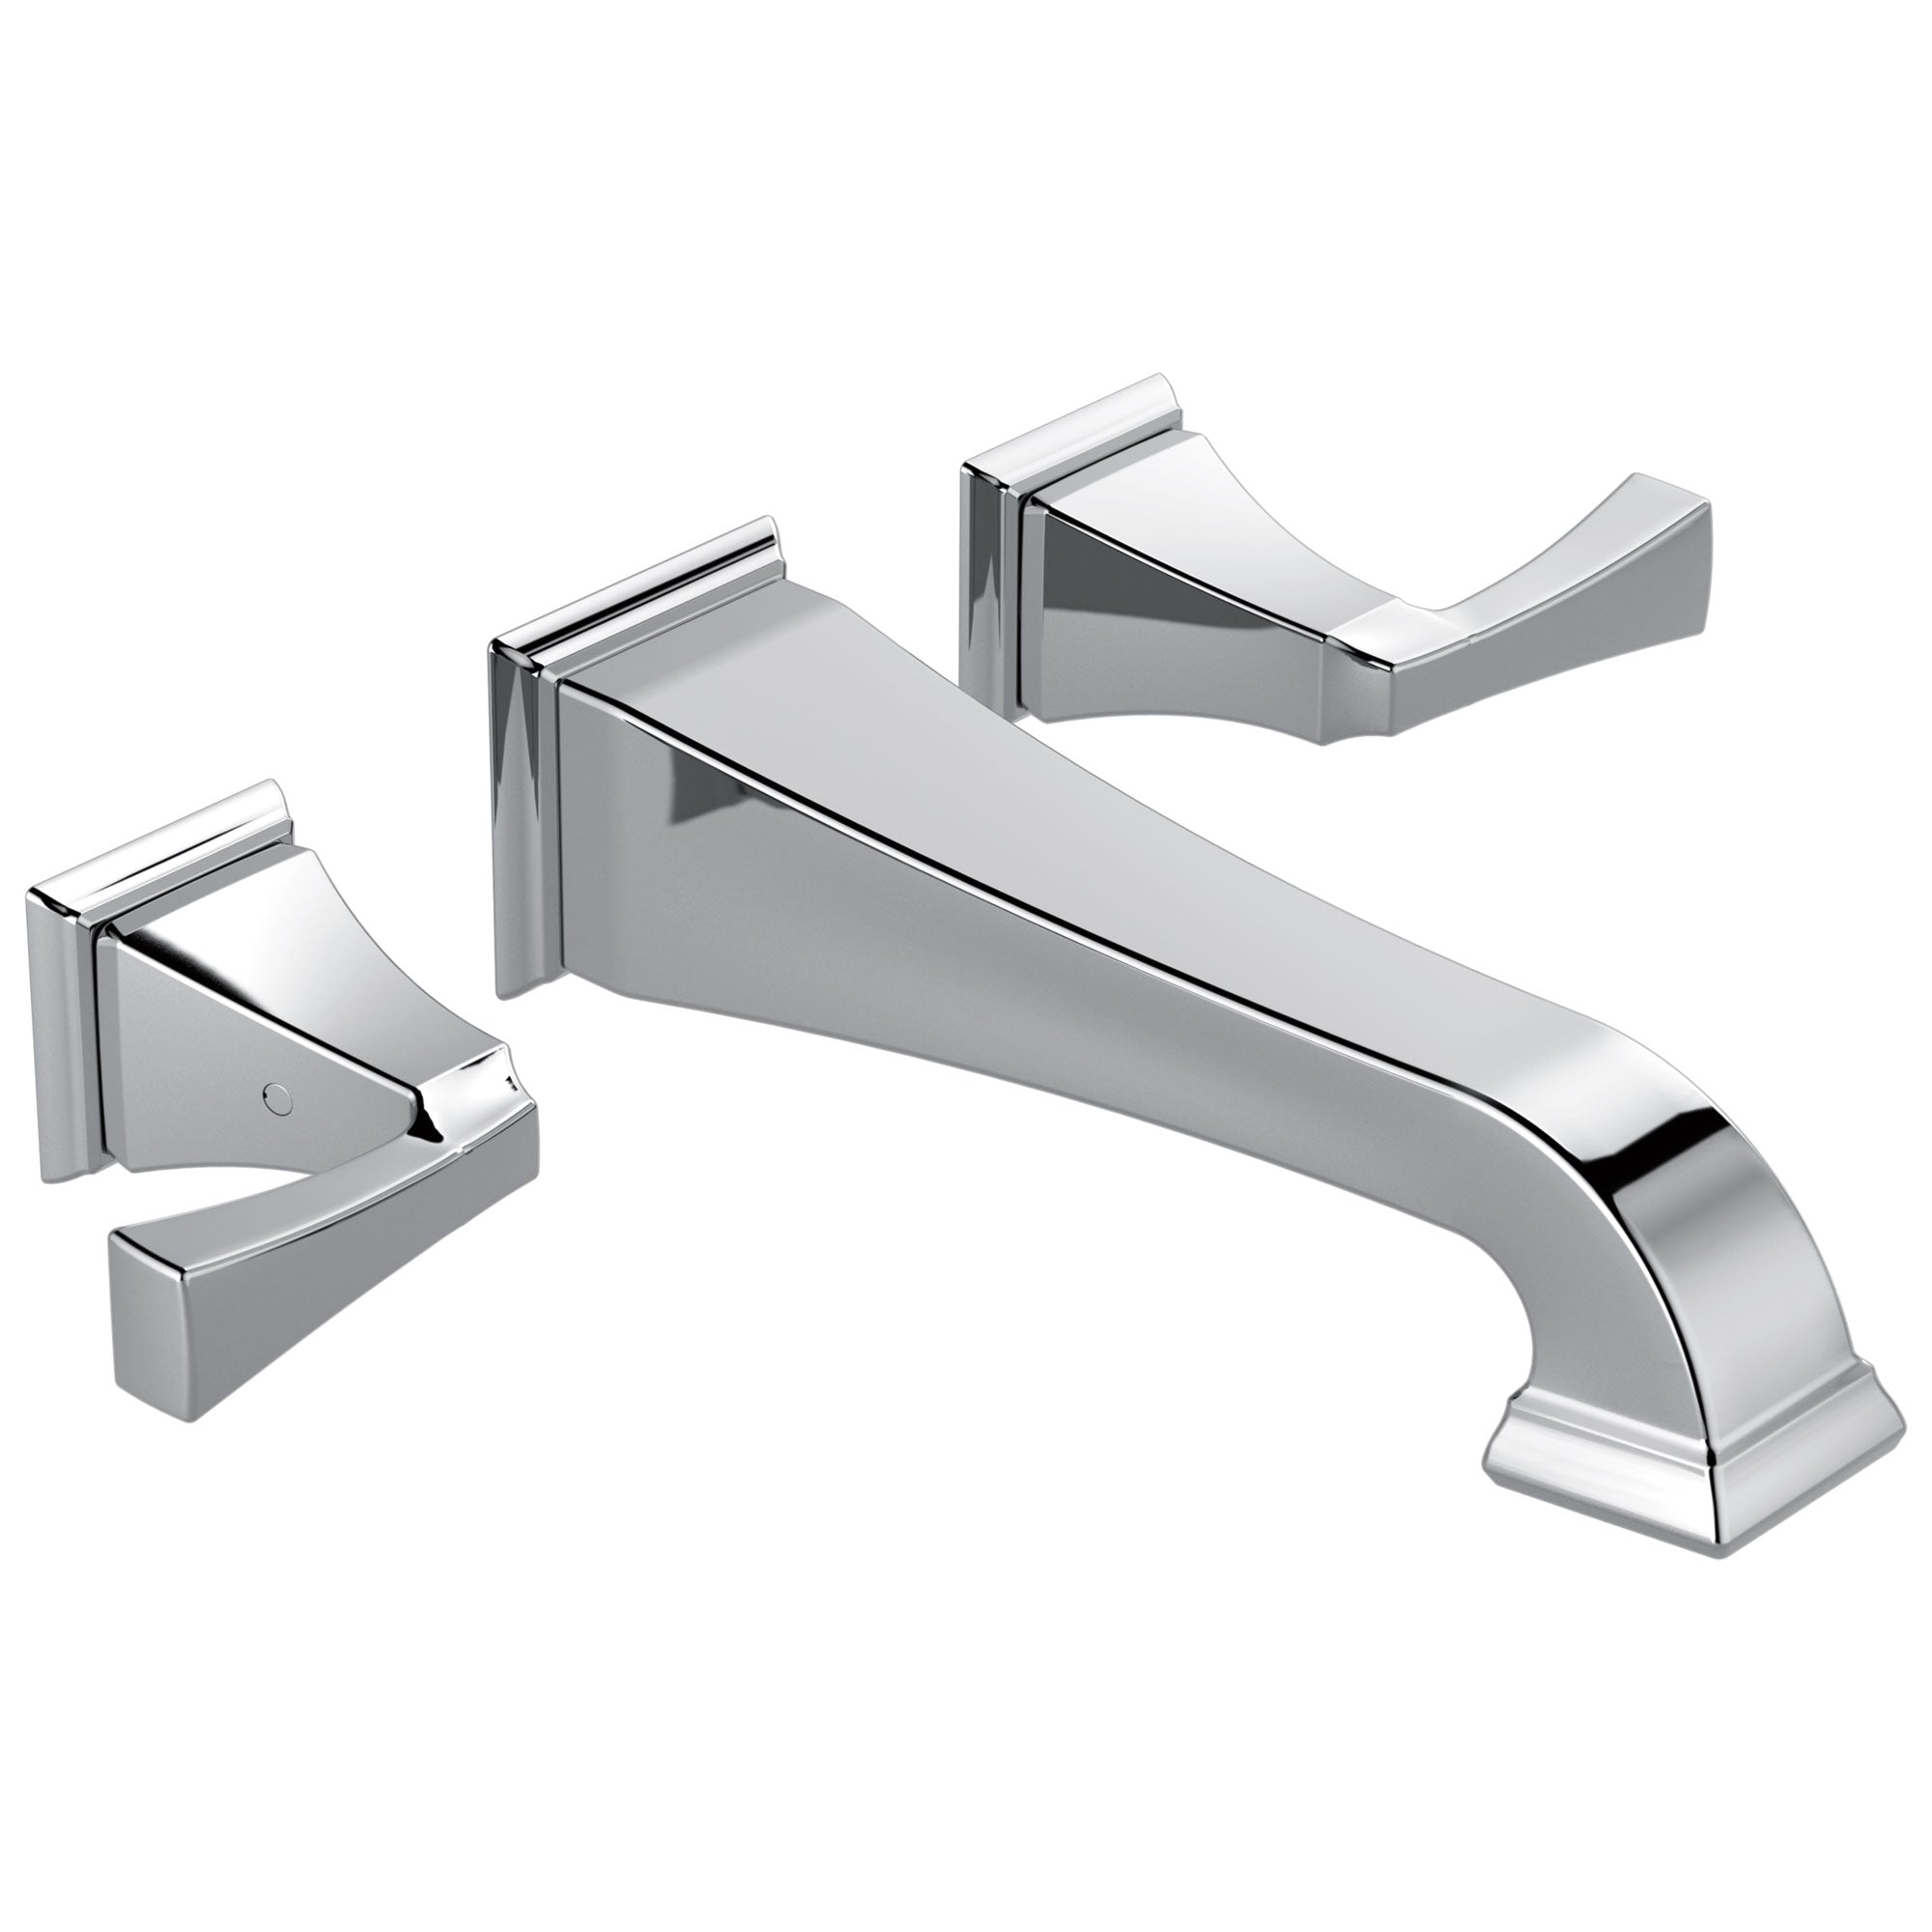 Delta Dryden Collection Chrome Finish Two Handle Wall Mounted Bathroom Sink Lavatory Faucet Includes Rough-in Valve D2100V